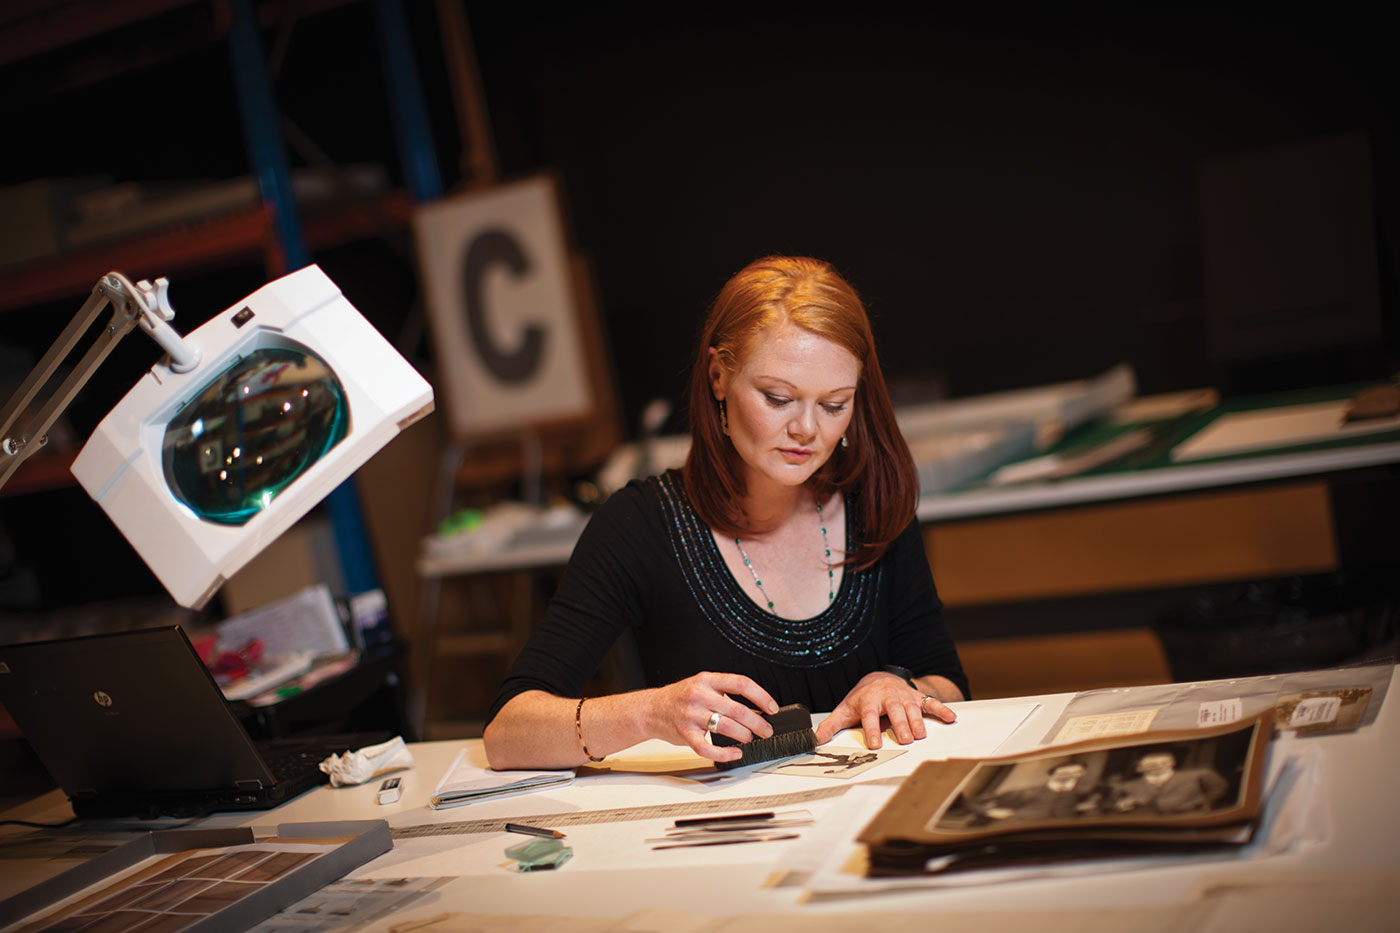 Conservator Jess Wignell at work during the Museum Workshop exhibition.